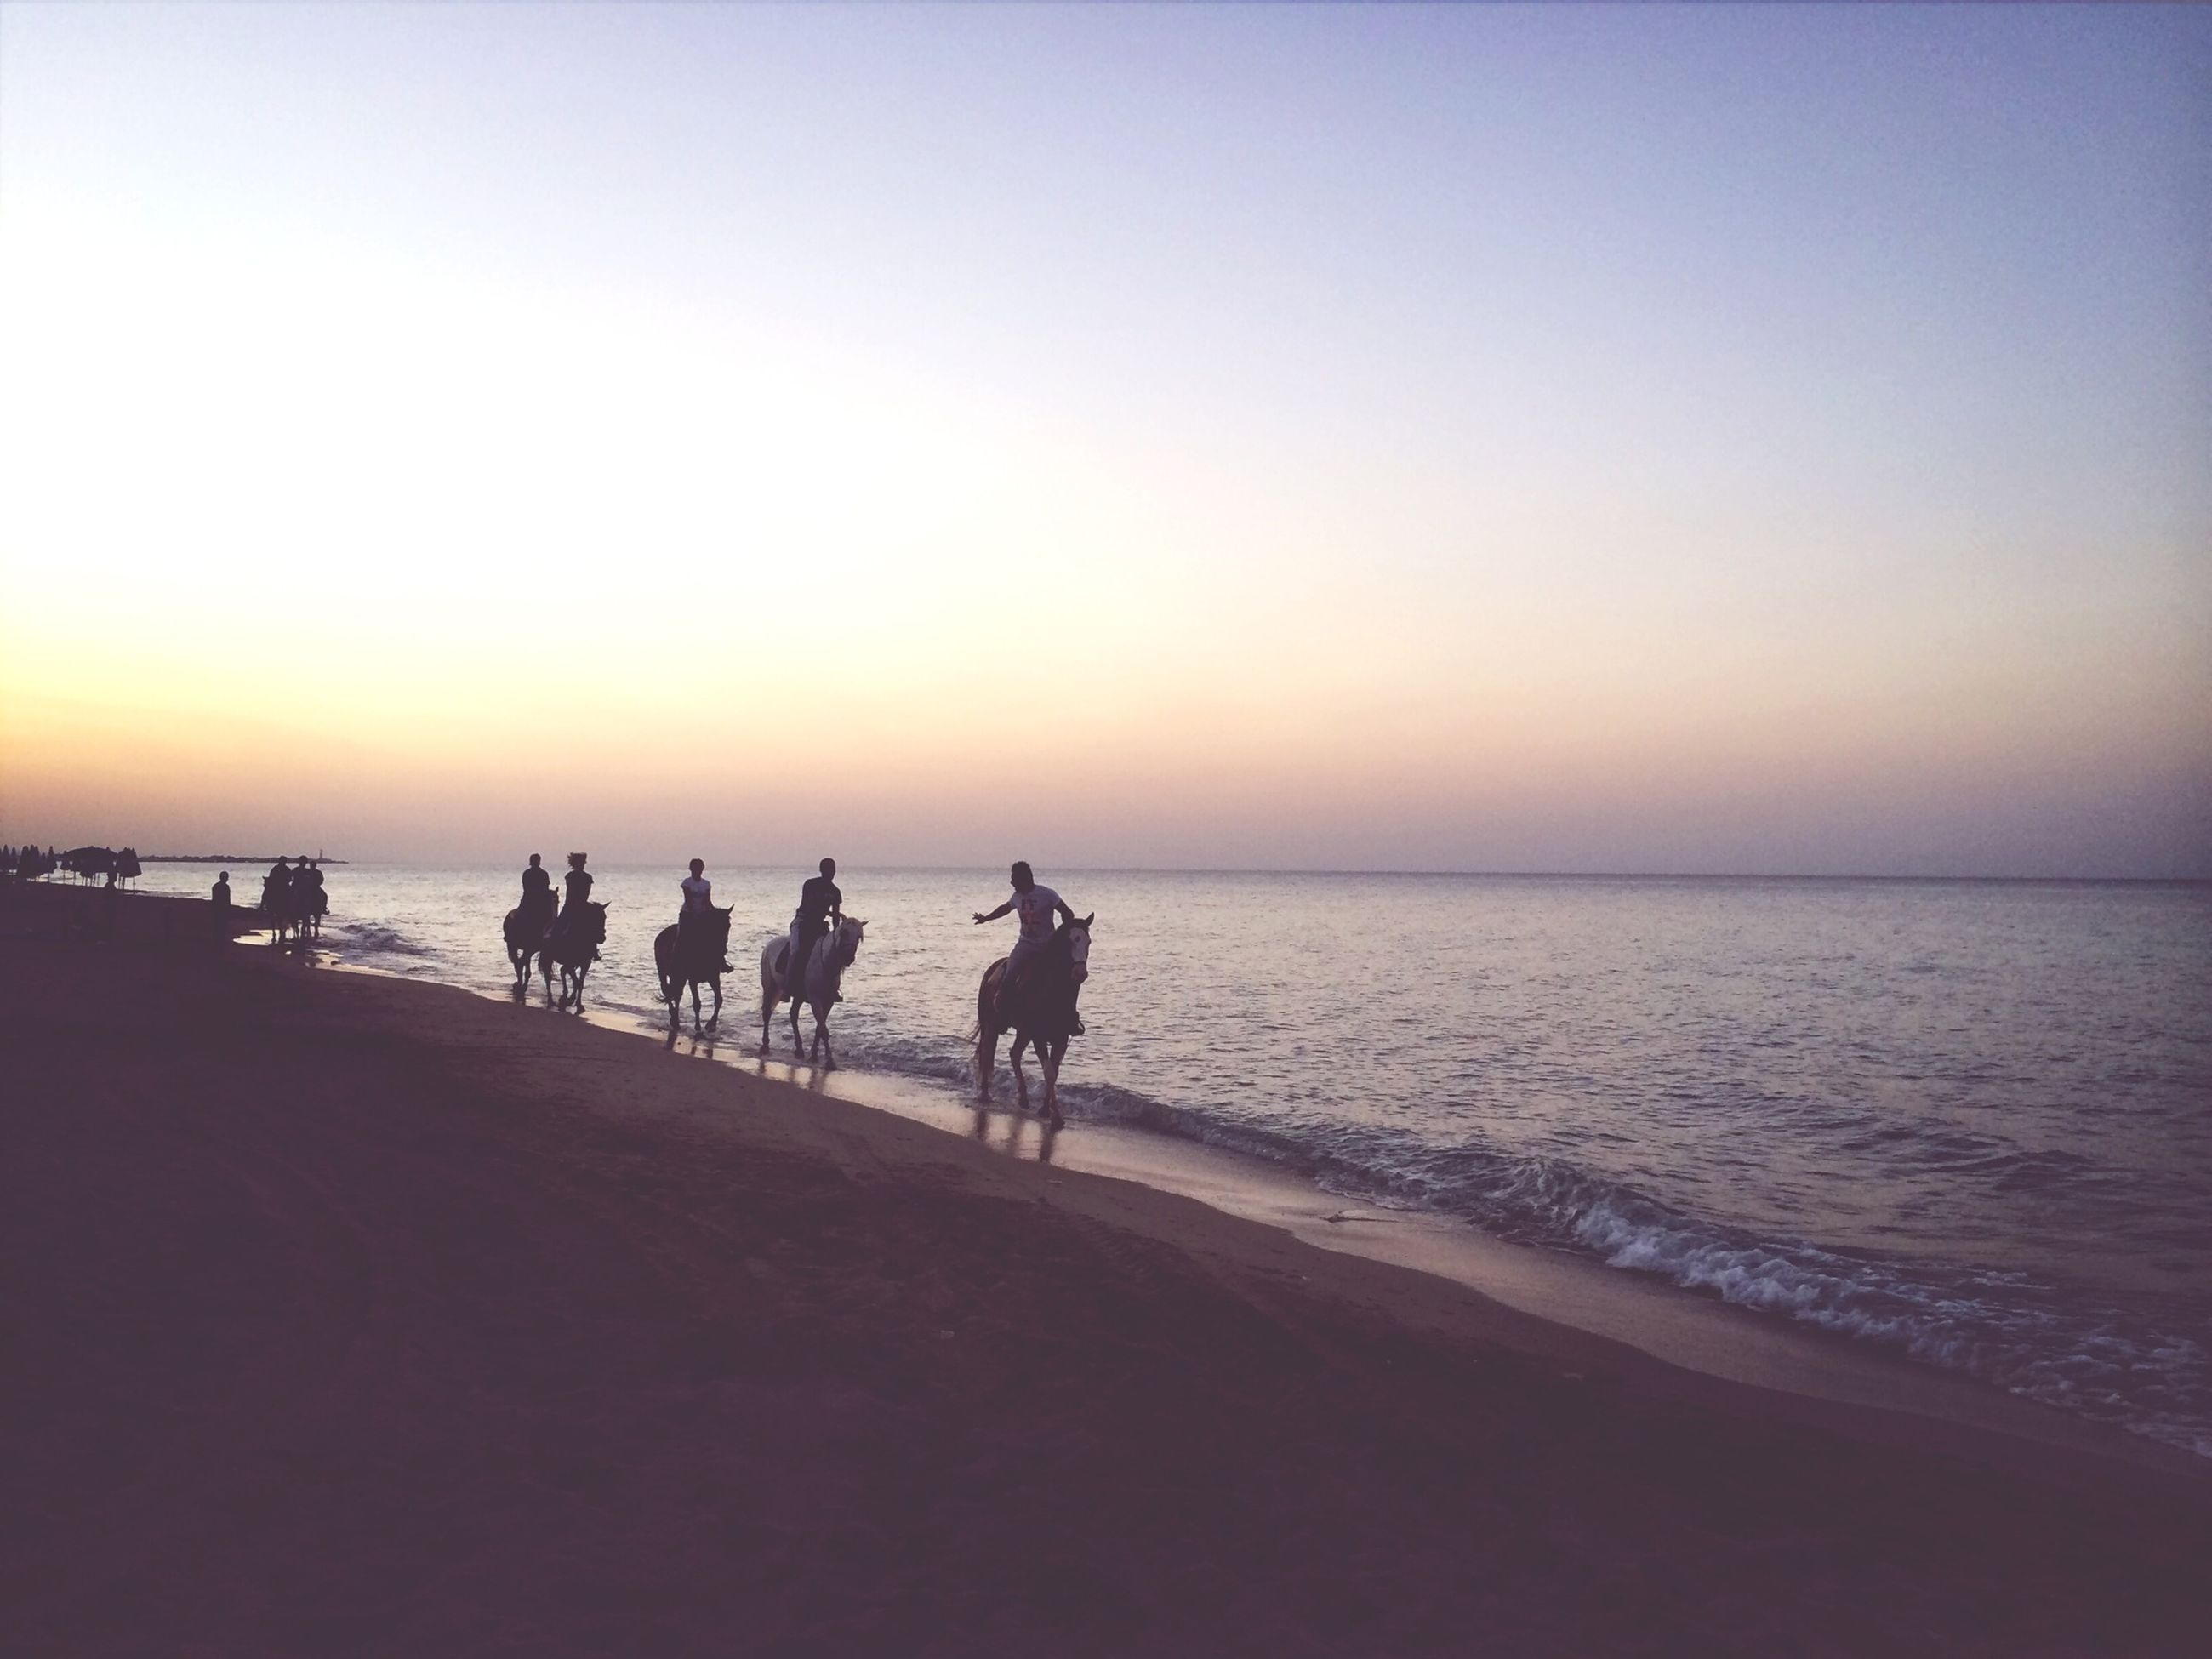 sea, sunset, horizon over water, water, beach, silhouette, copy space, clear sky, scenics, tranquil scene, men, tranquility, orange color, shore, leisure activity, beauty in nature, lifestyles, nature, walking